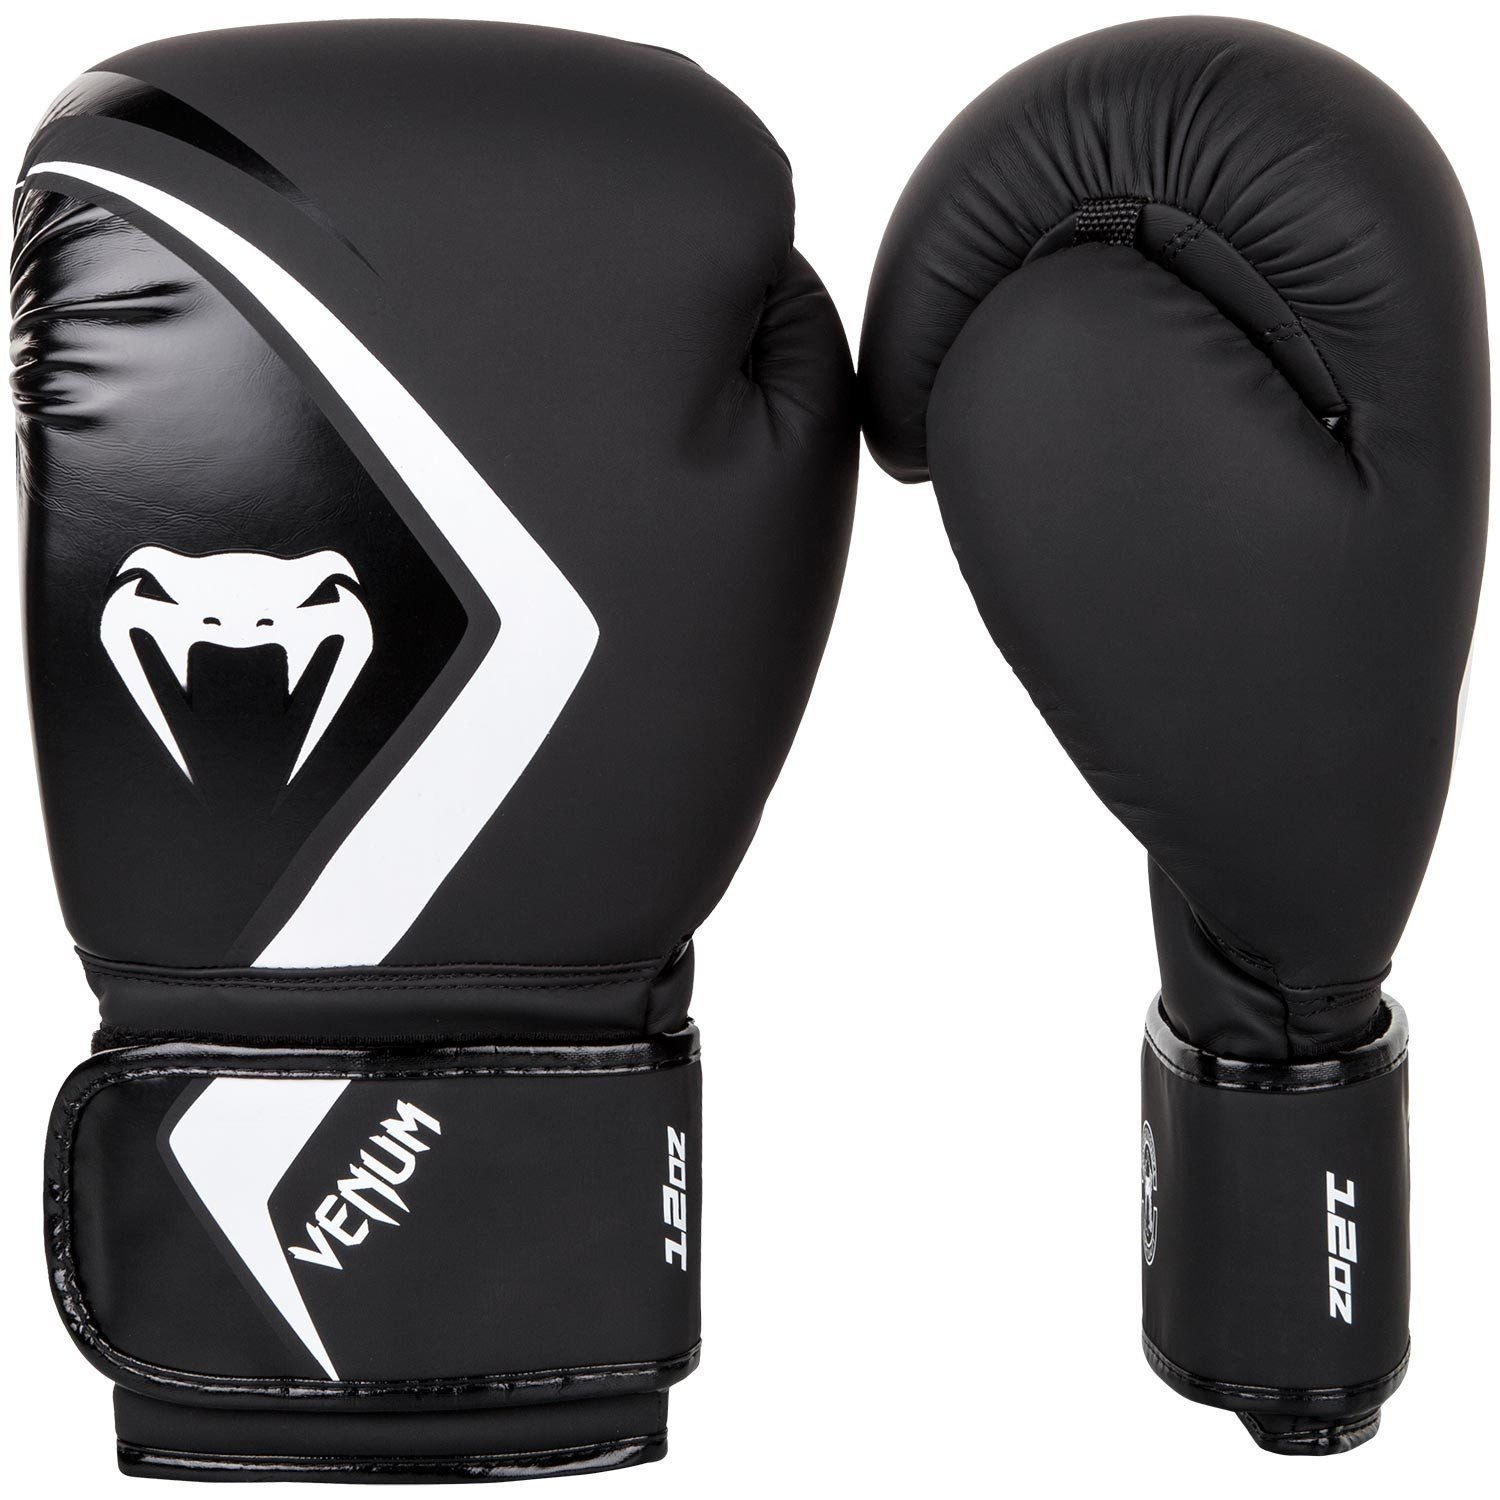 c7360f9e1700b4 Venum Contender Boxing Gloves Buying | Fightwear Shop Europe ...